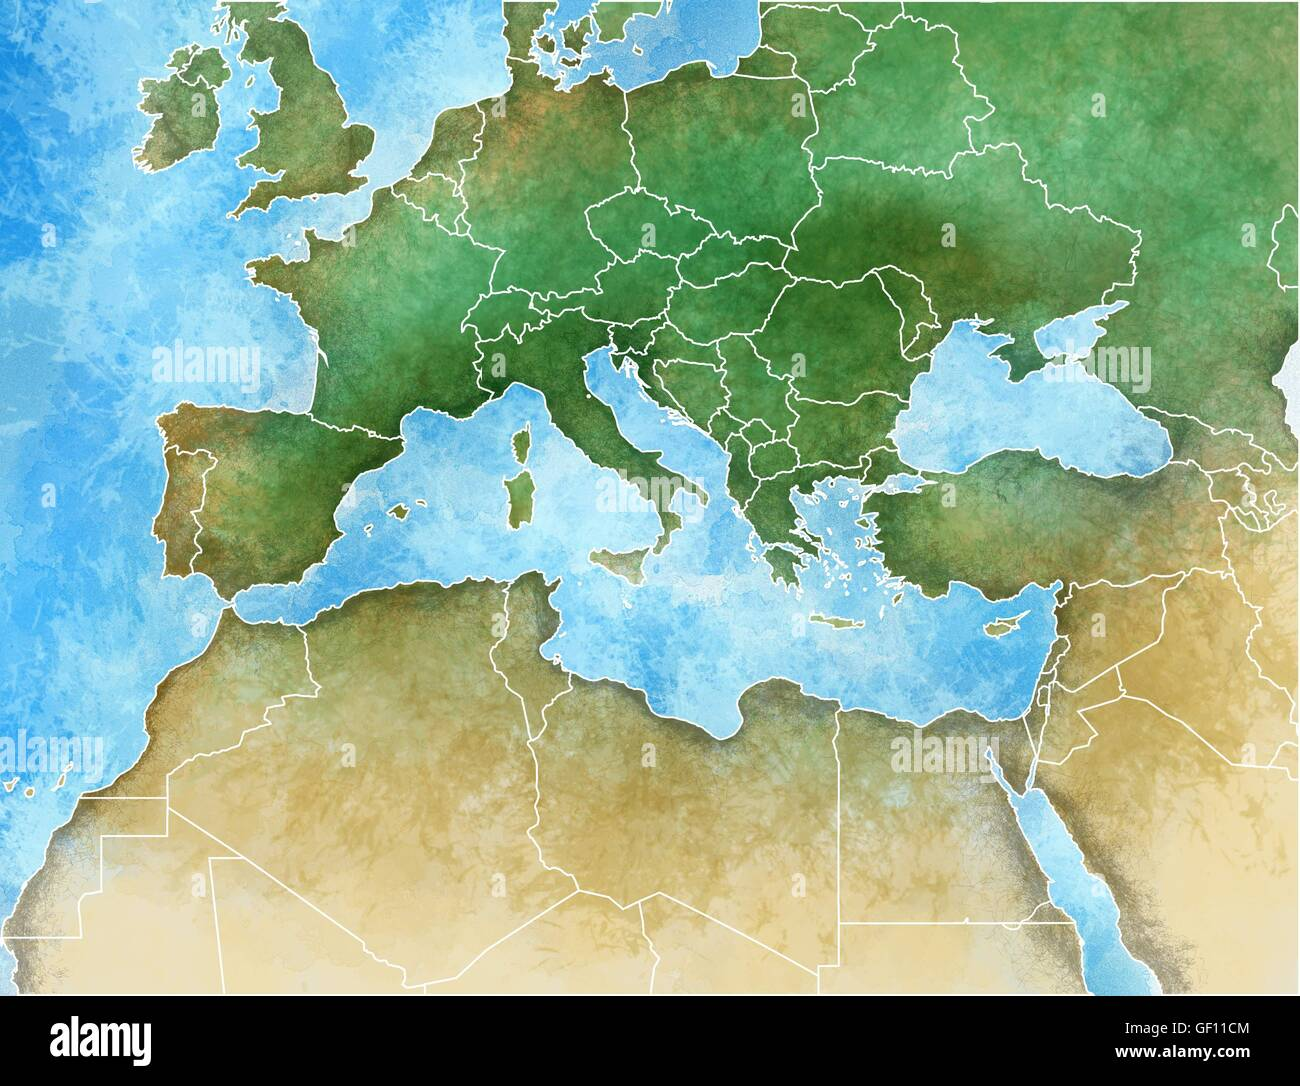 Hand-drawn map of the Mediterranean, Europe, Africa and Middle East ...